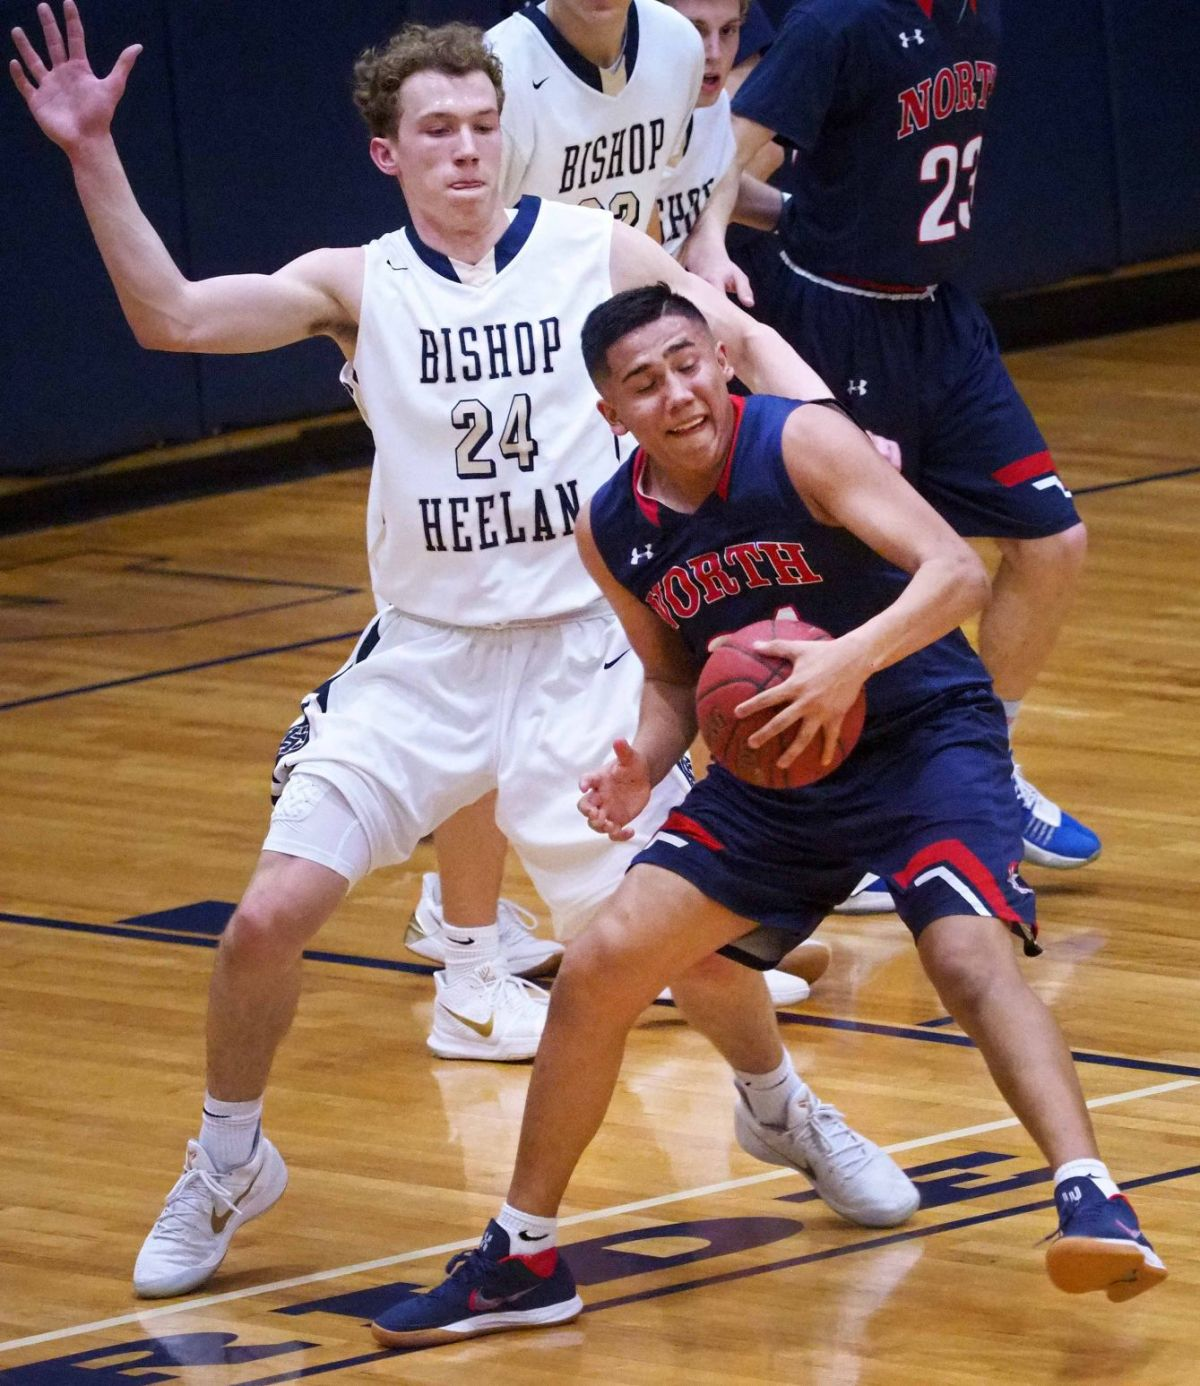 BOYS BASKETBALL PLAYER OF THE YEAR: Heelan's Elijah ...